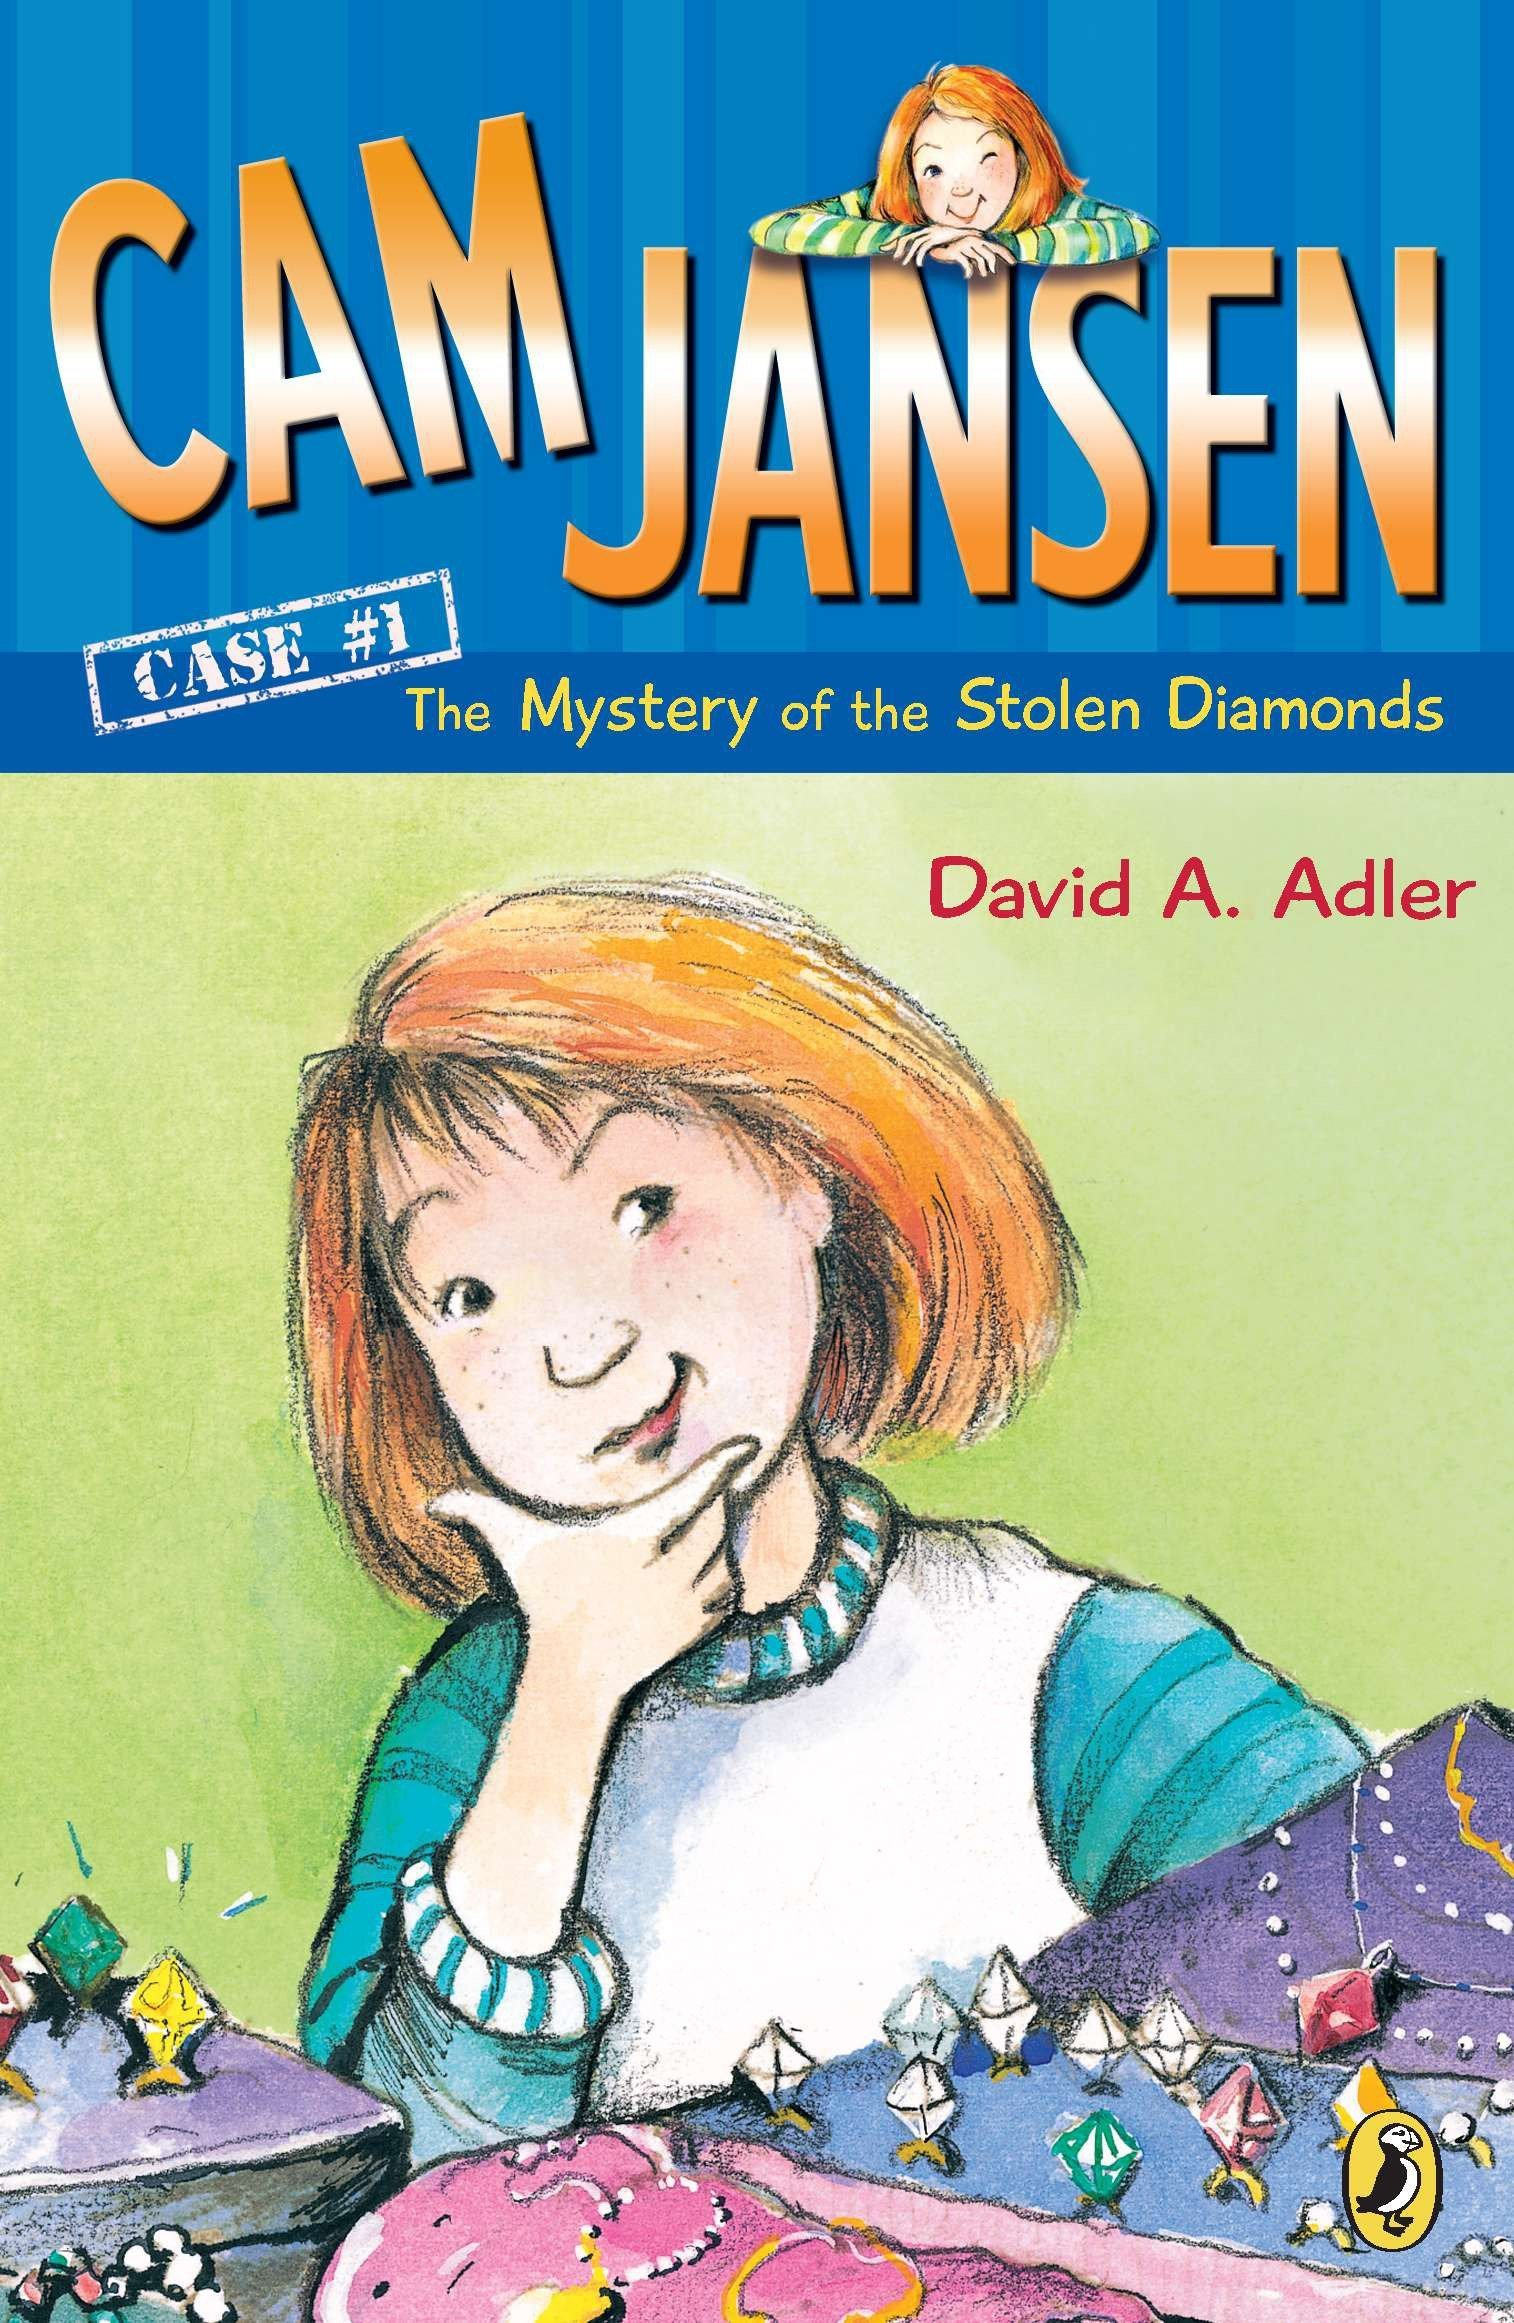 The Cam Jansen Mystery Series: The Case of the Stolen Diamonds